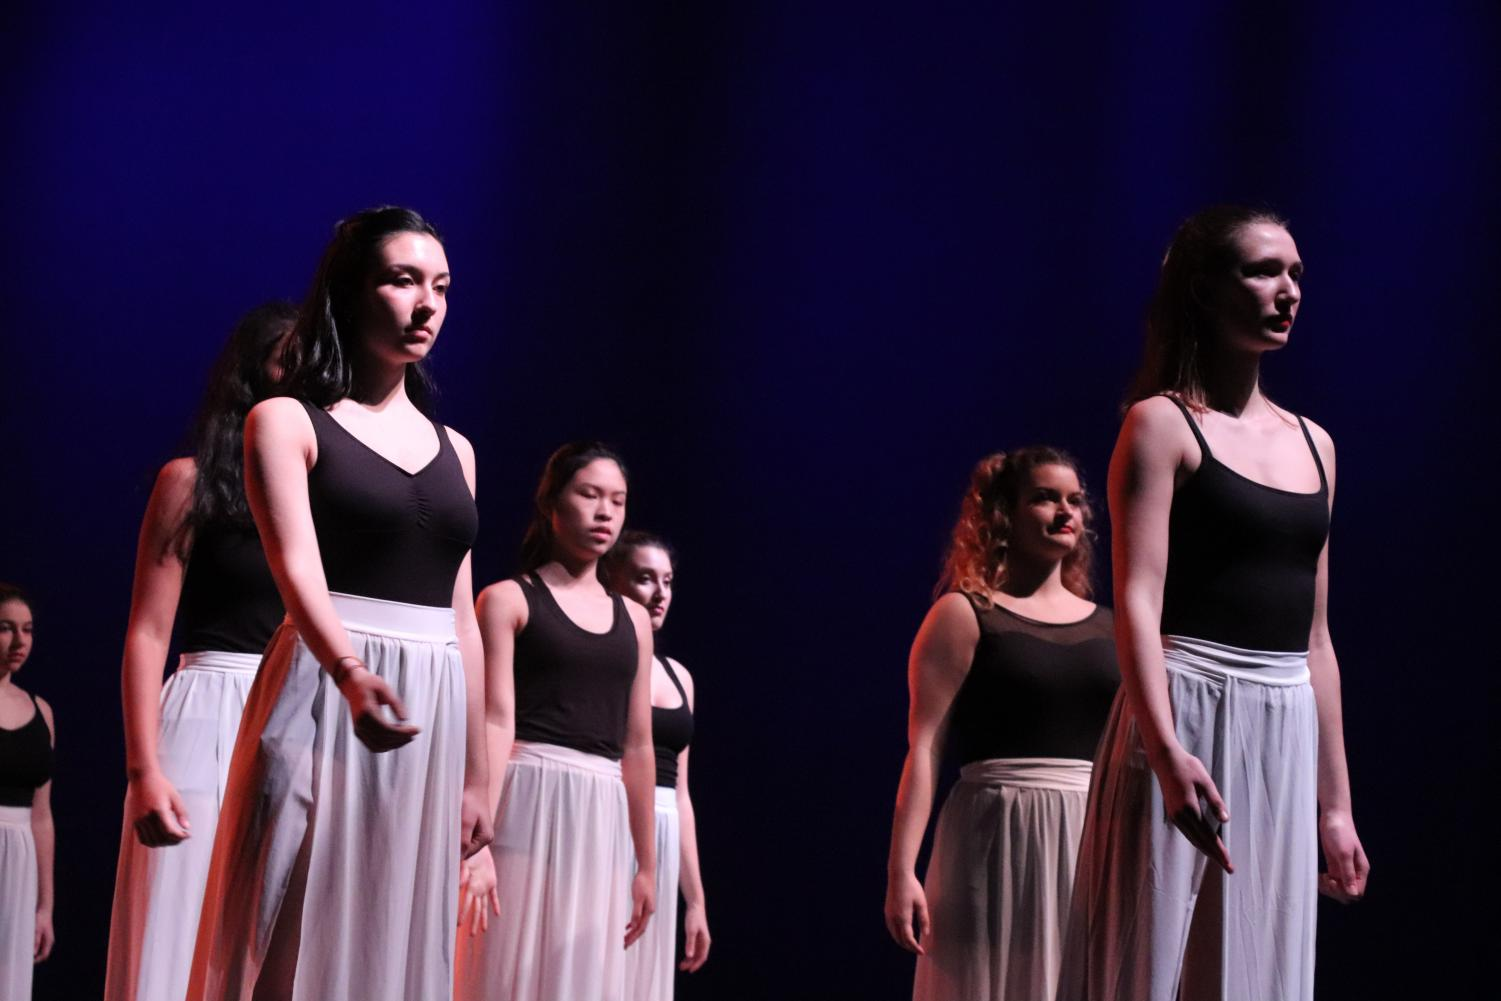 Modern Dance Company's dancers shone in the recent DANCE/works performance.